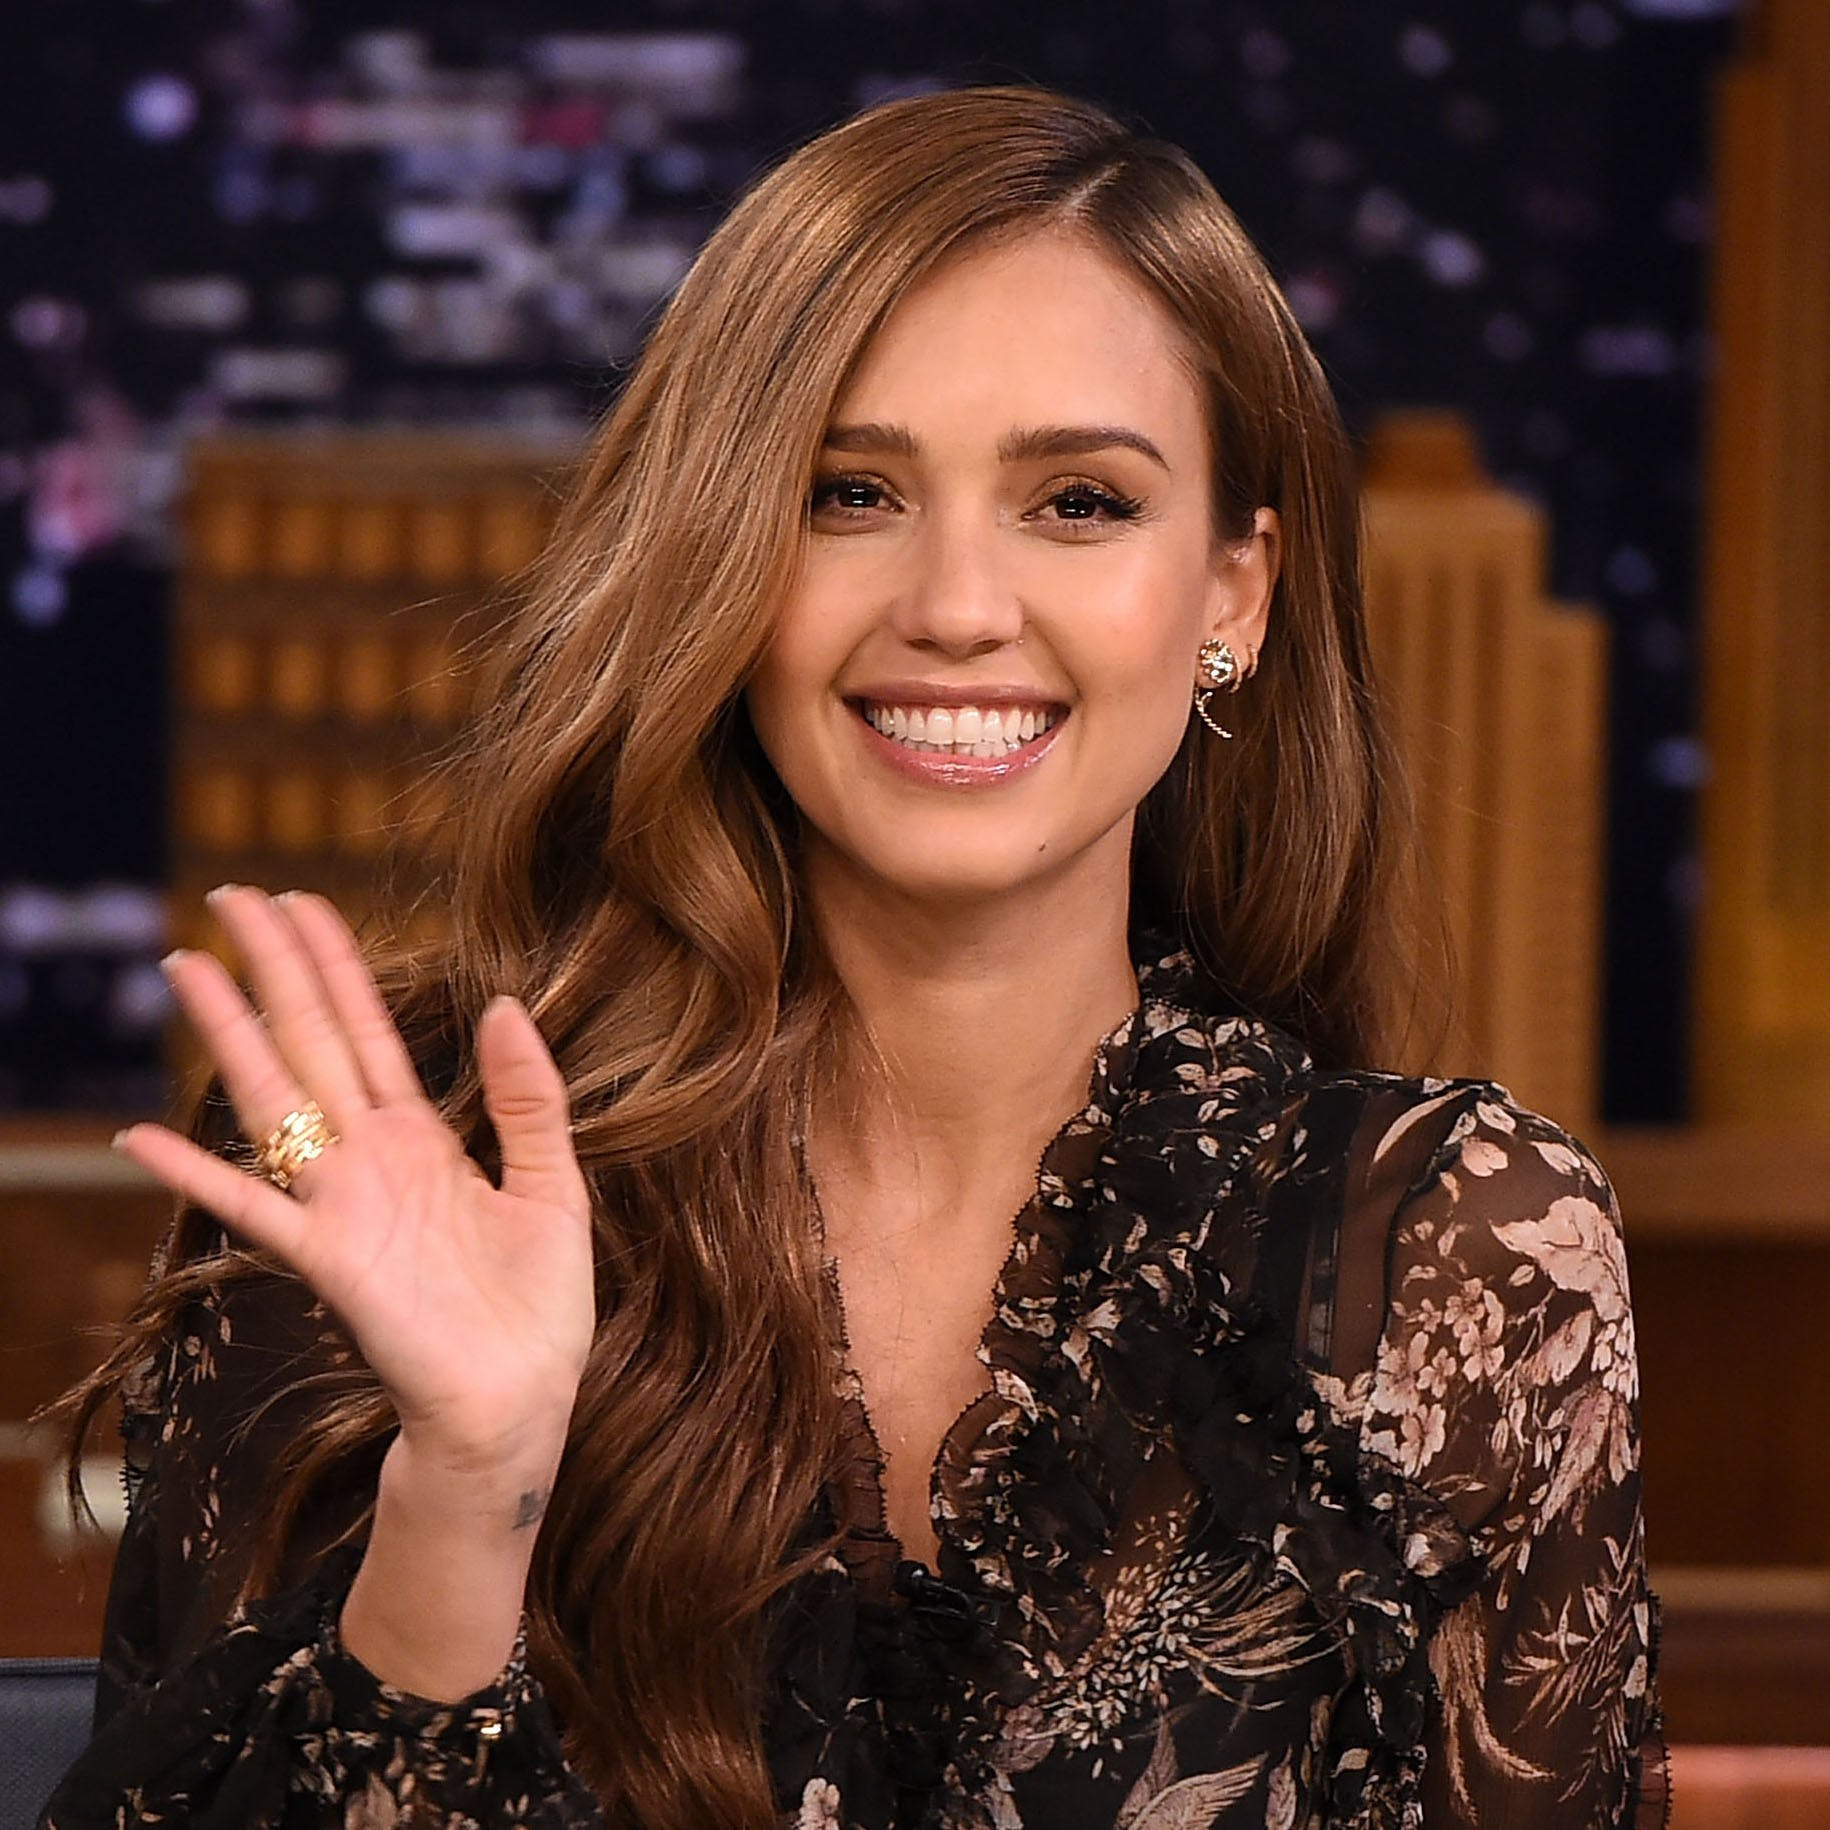 jessica-alba-age-height-weight-net-worth